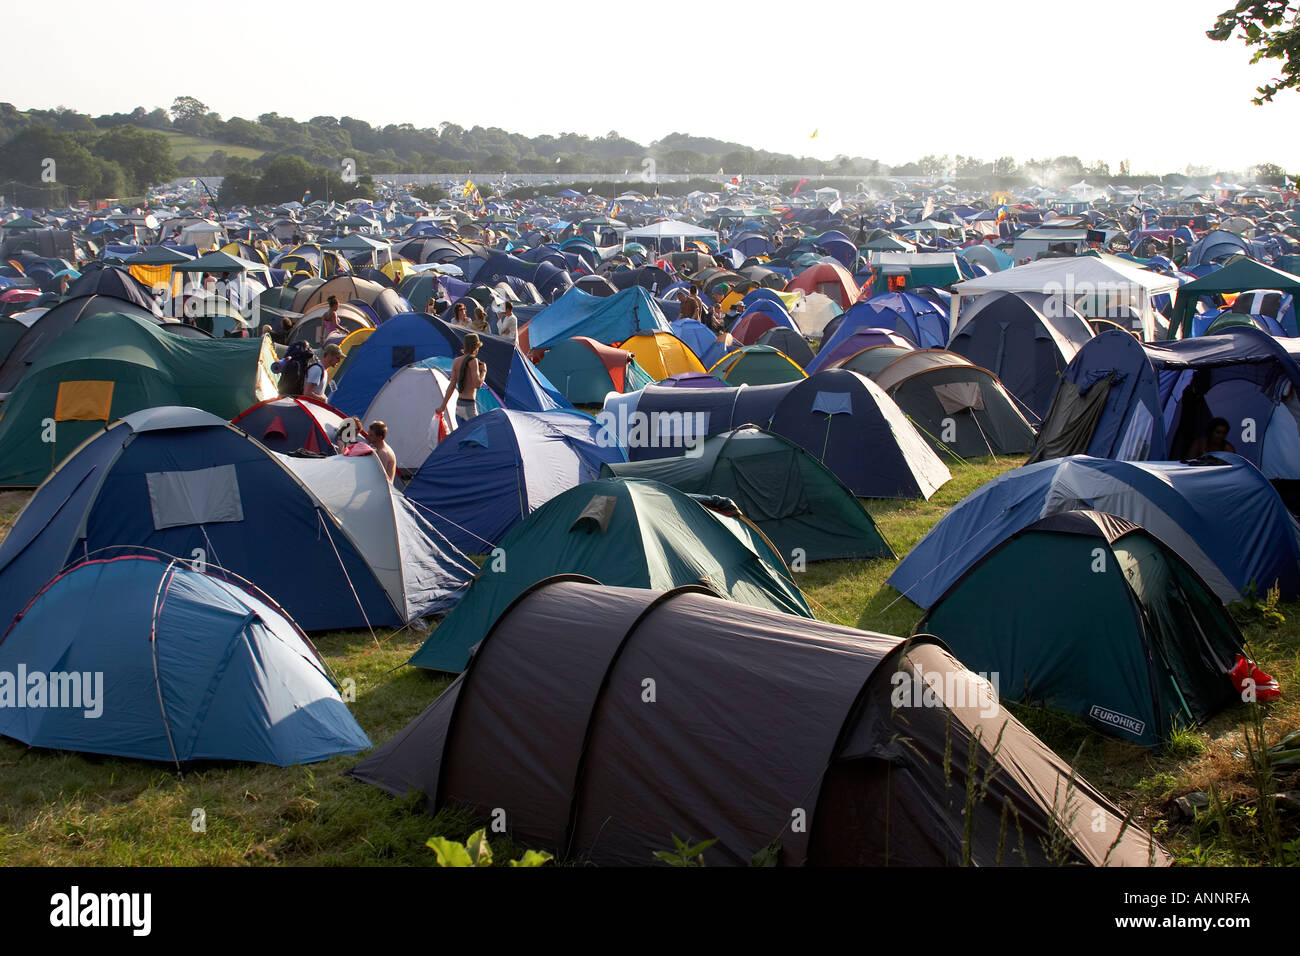 C&ing field tents before the flood at Glastonbury Festival of Contemporary Performing Arts Somerset England UK 2005 & Camping field tents before the flood at Glastonbury Festival of ...